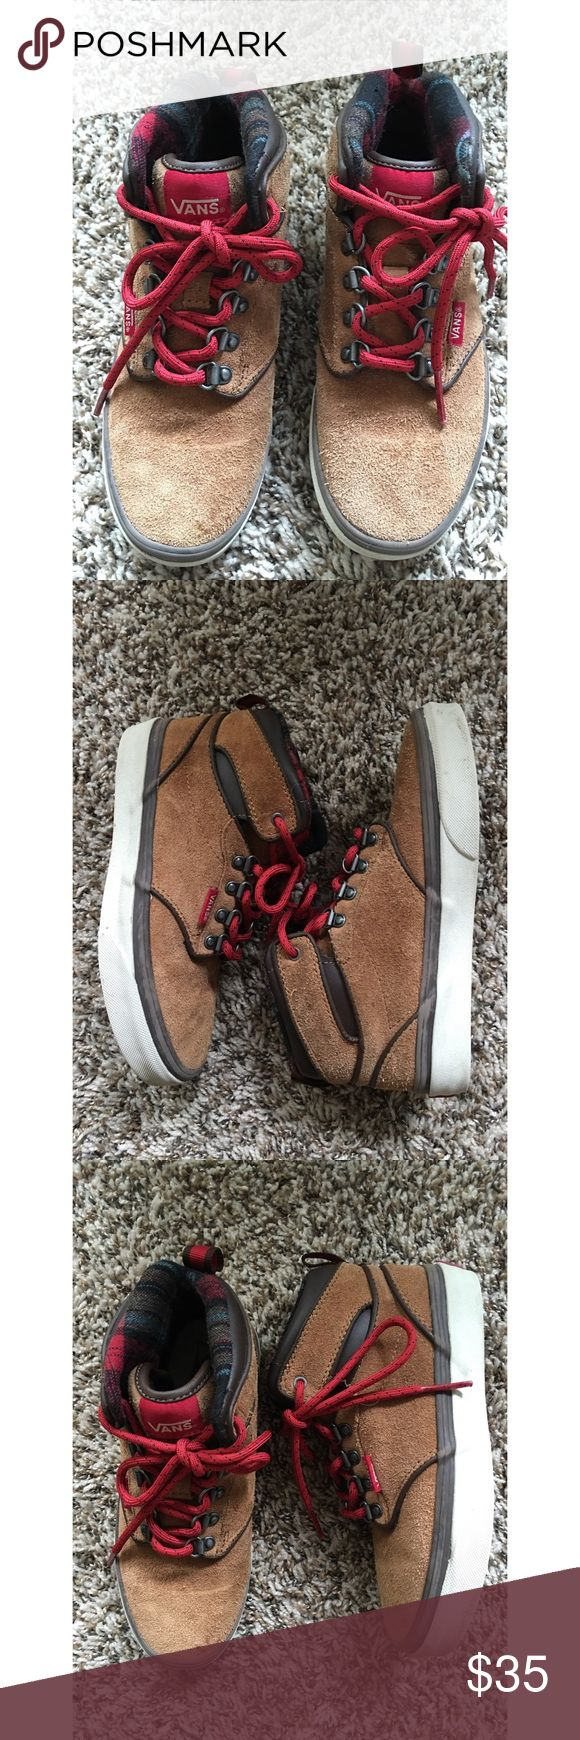 VANS Boys' Atwood Hi-Top Suede Shoes Vans brown suede hiking style high tops with printed padded ankle support (2.5). No damage, stains or signs of wear. No trades. Bundle for a discount. Vans Shoes